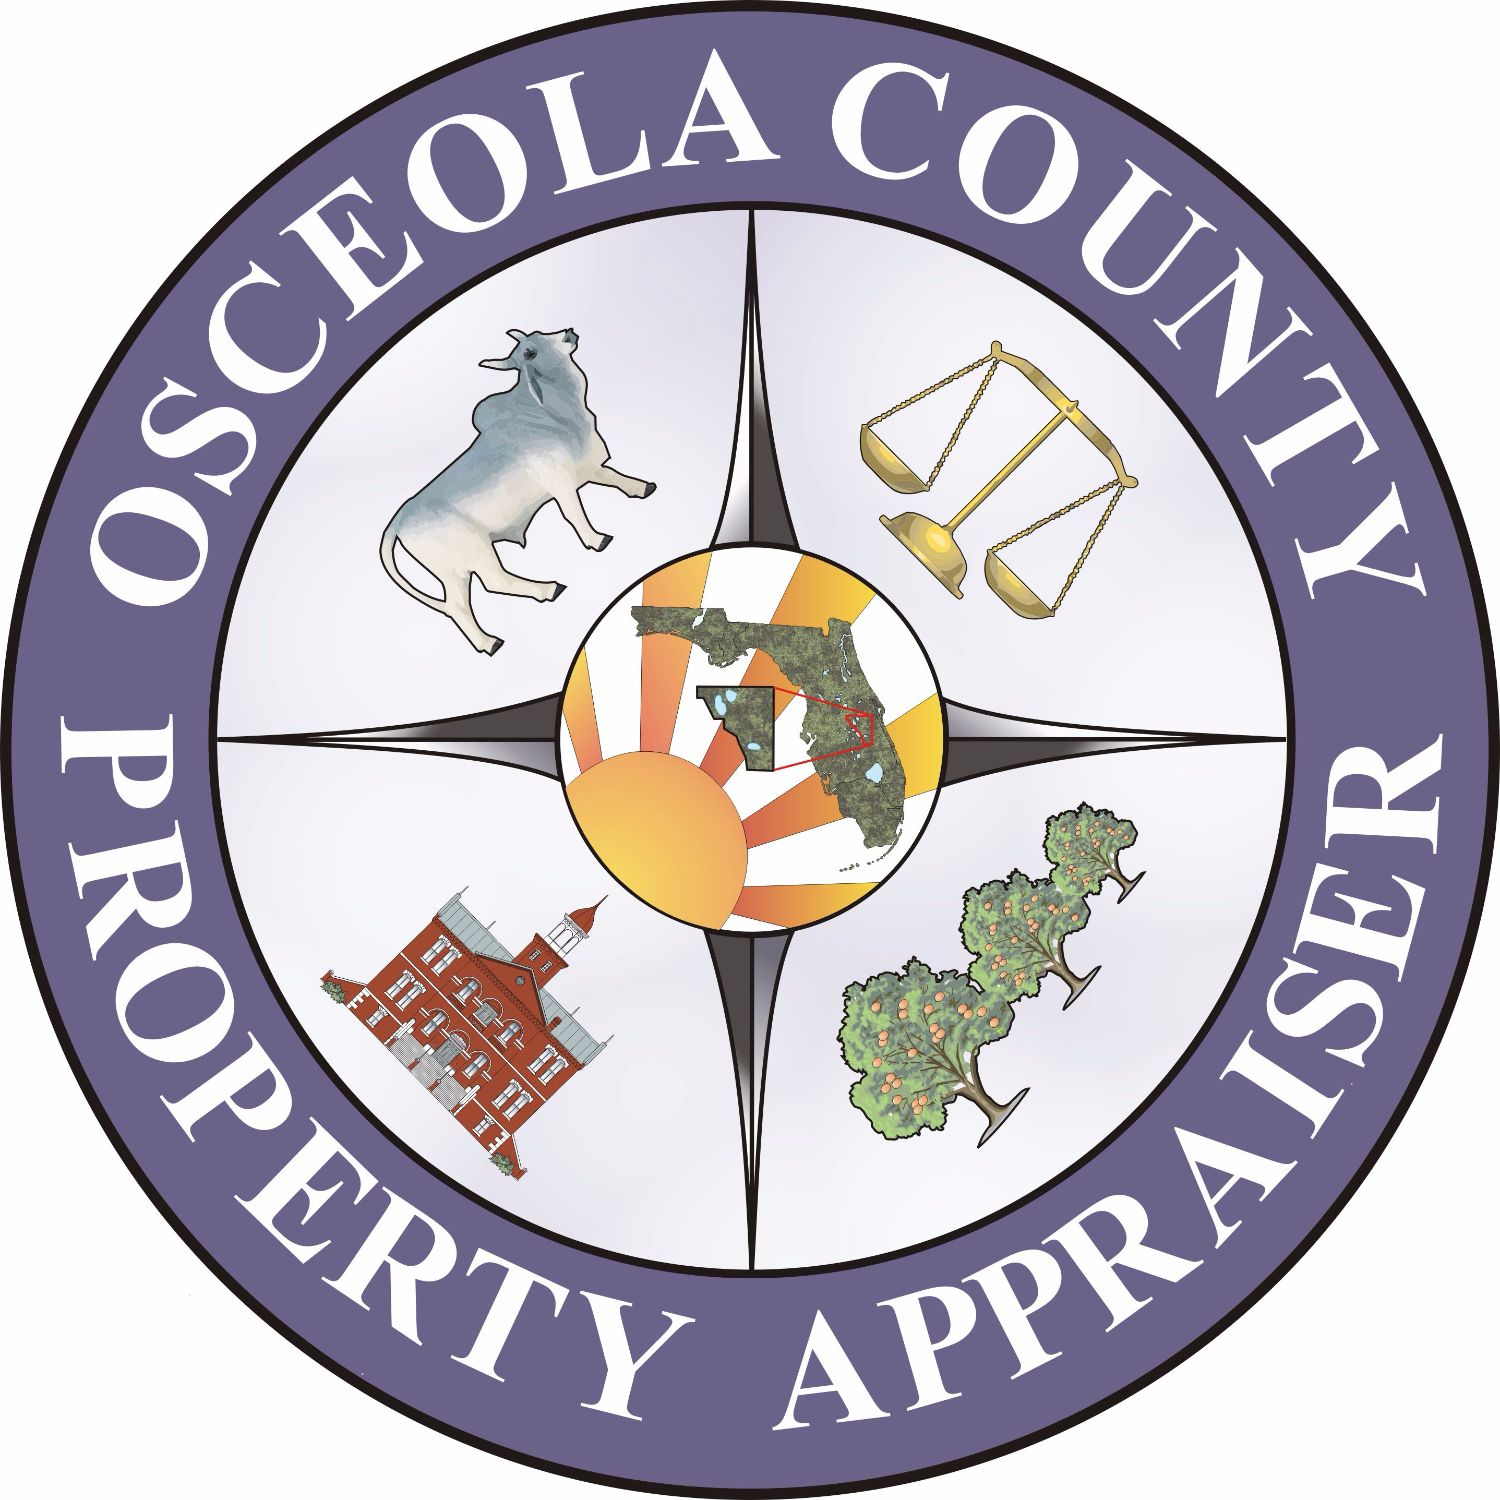 osceola county property tax records